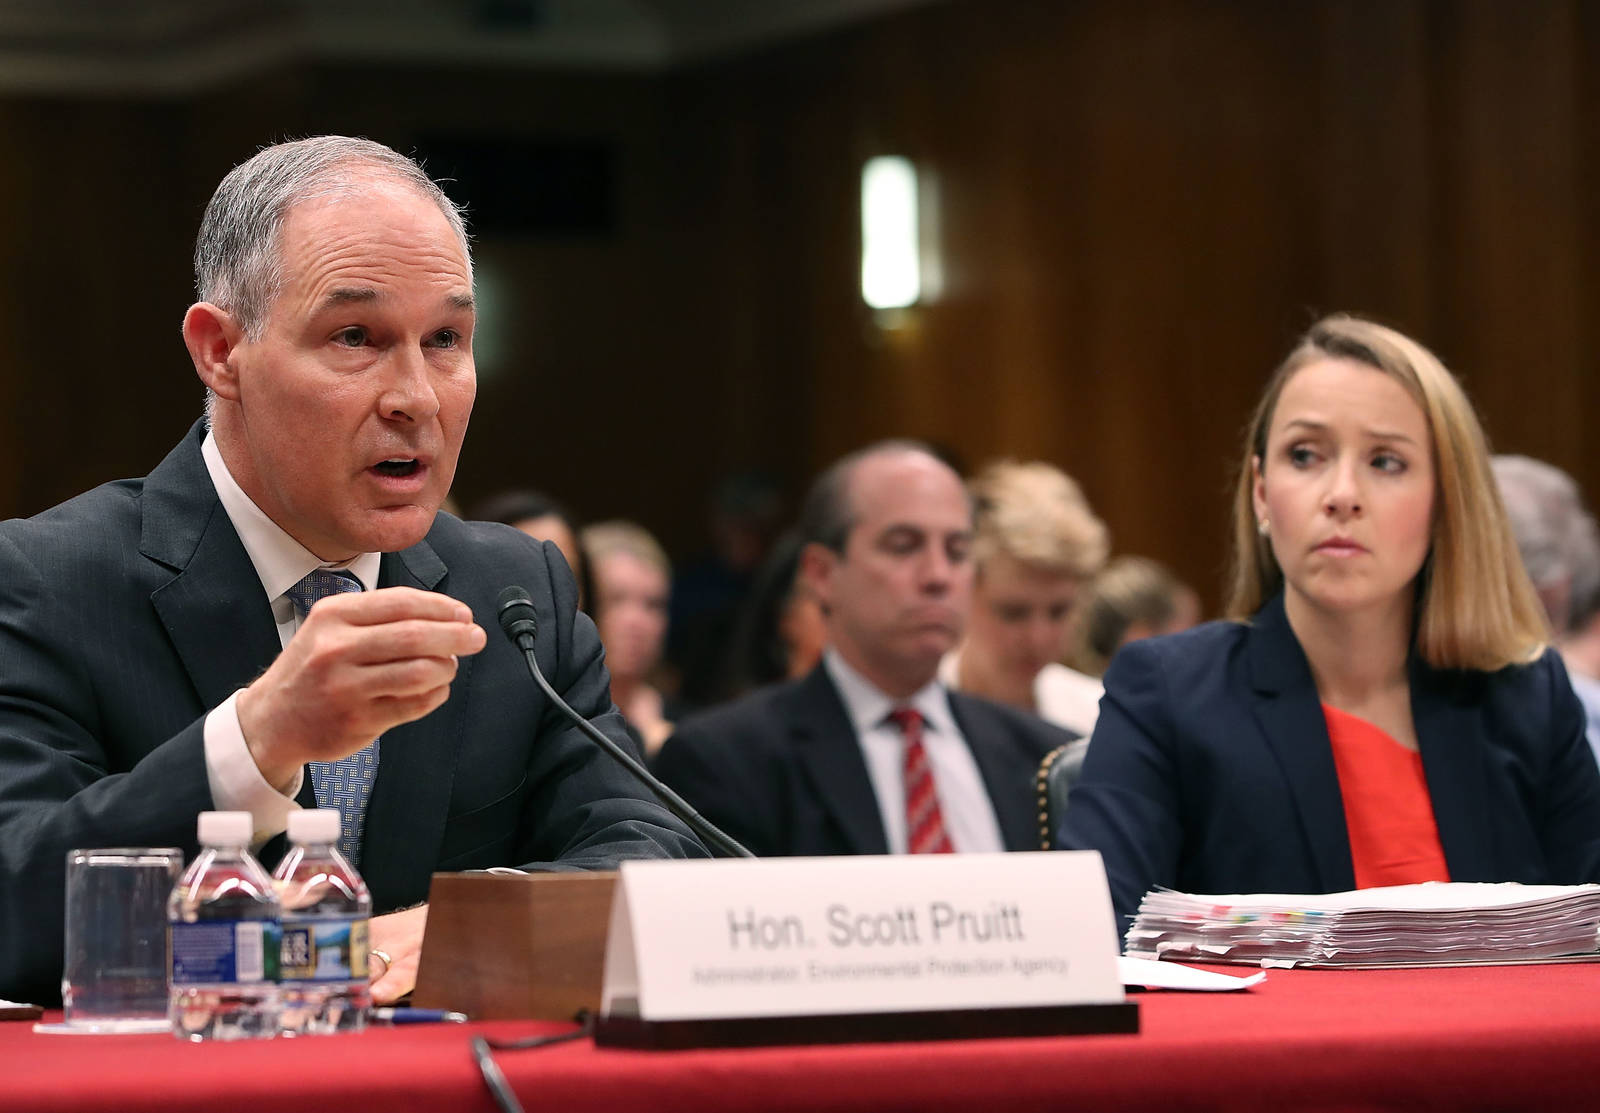 Pruitt's Anti-Climate Agenda Is Facing New Challenge From Major Scientific Review Board